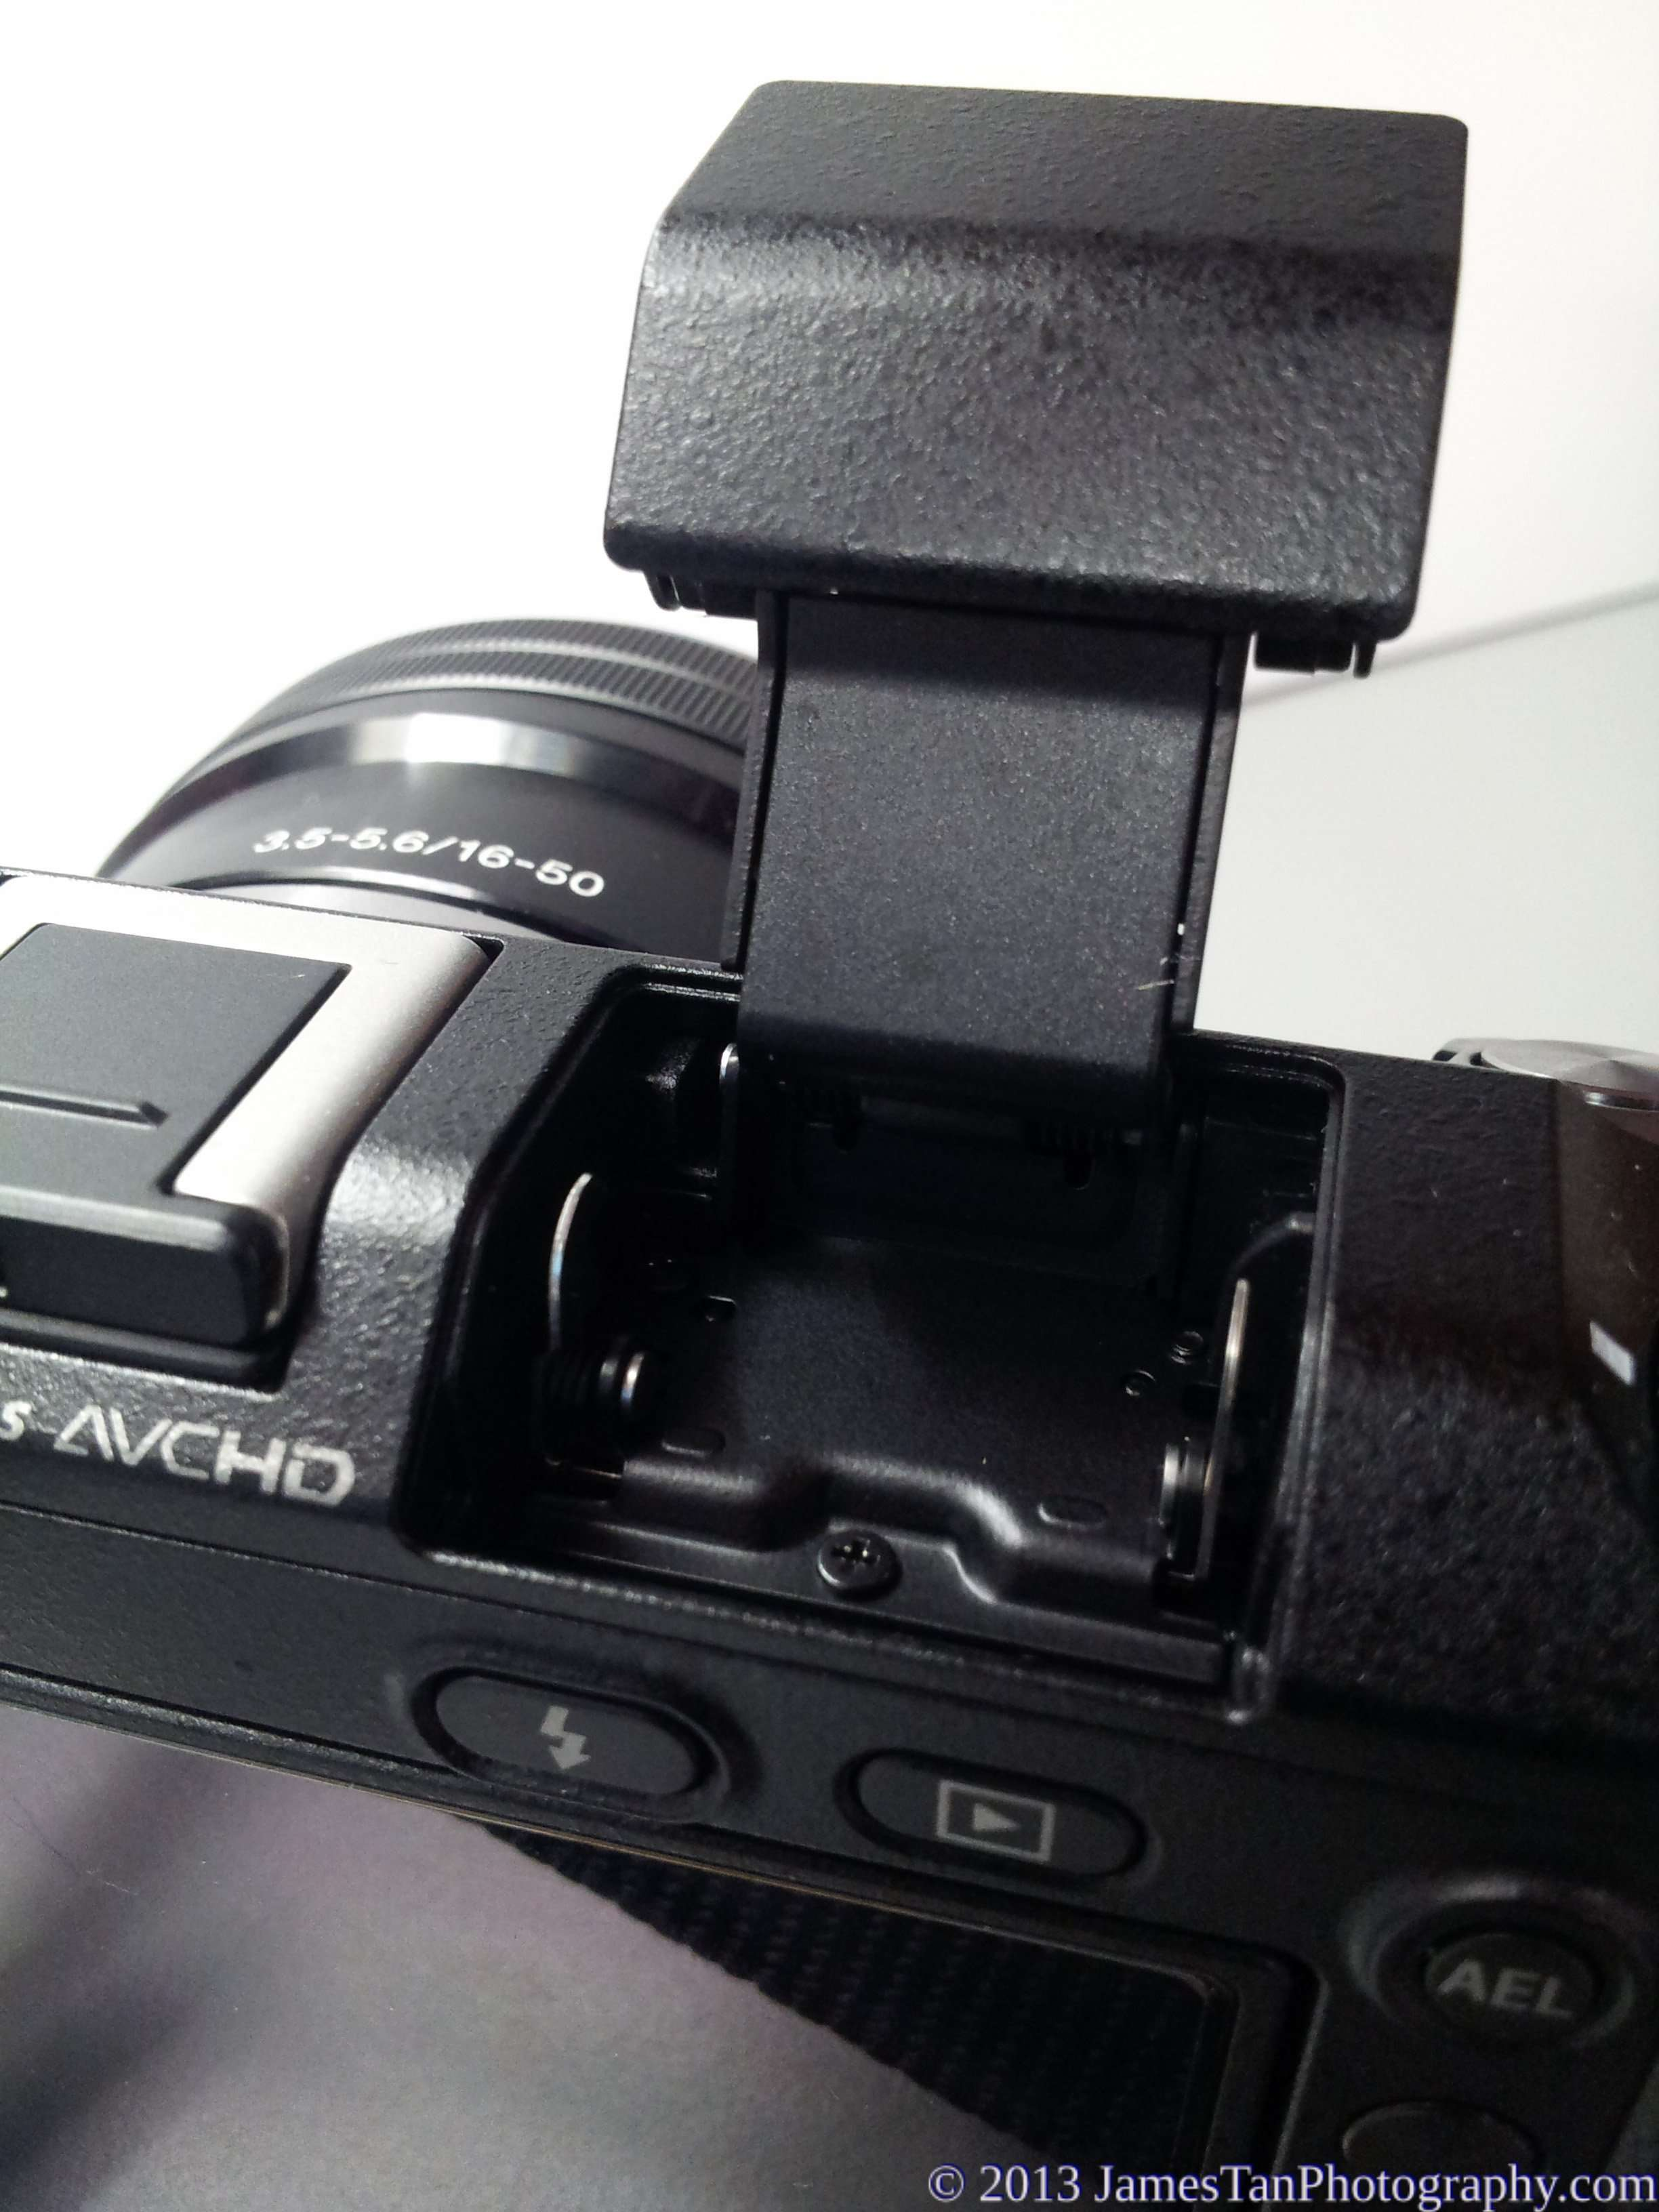 Sony Alpha NEX-6 Built-in flash back view